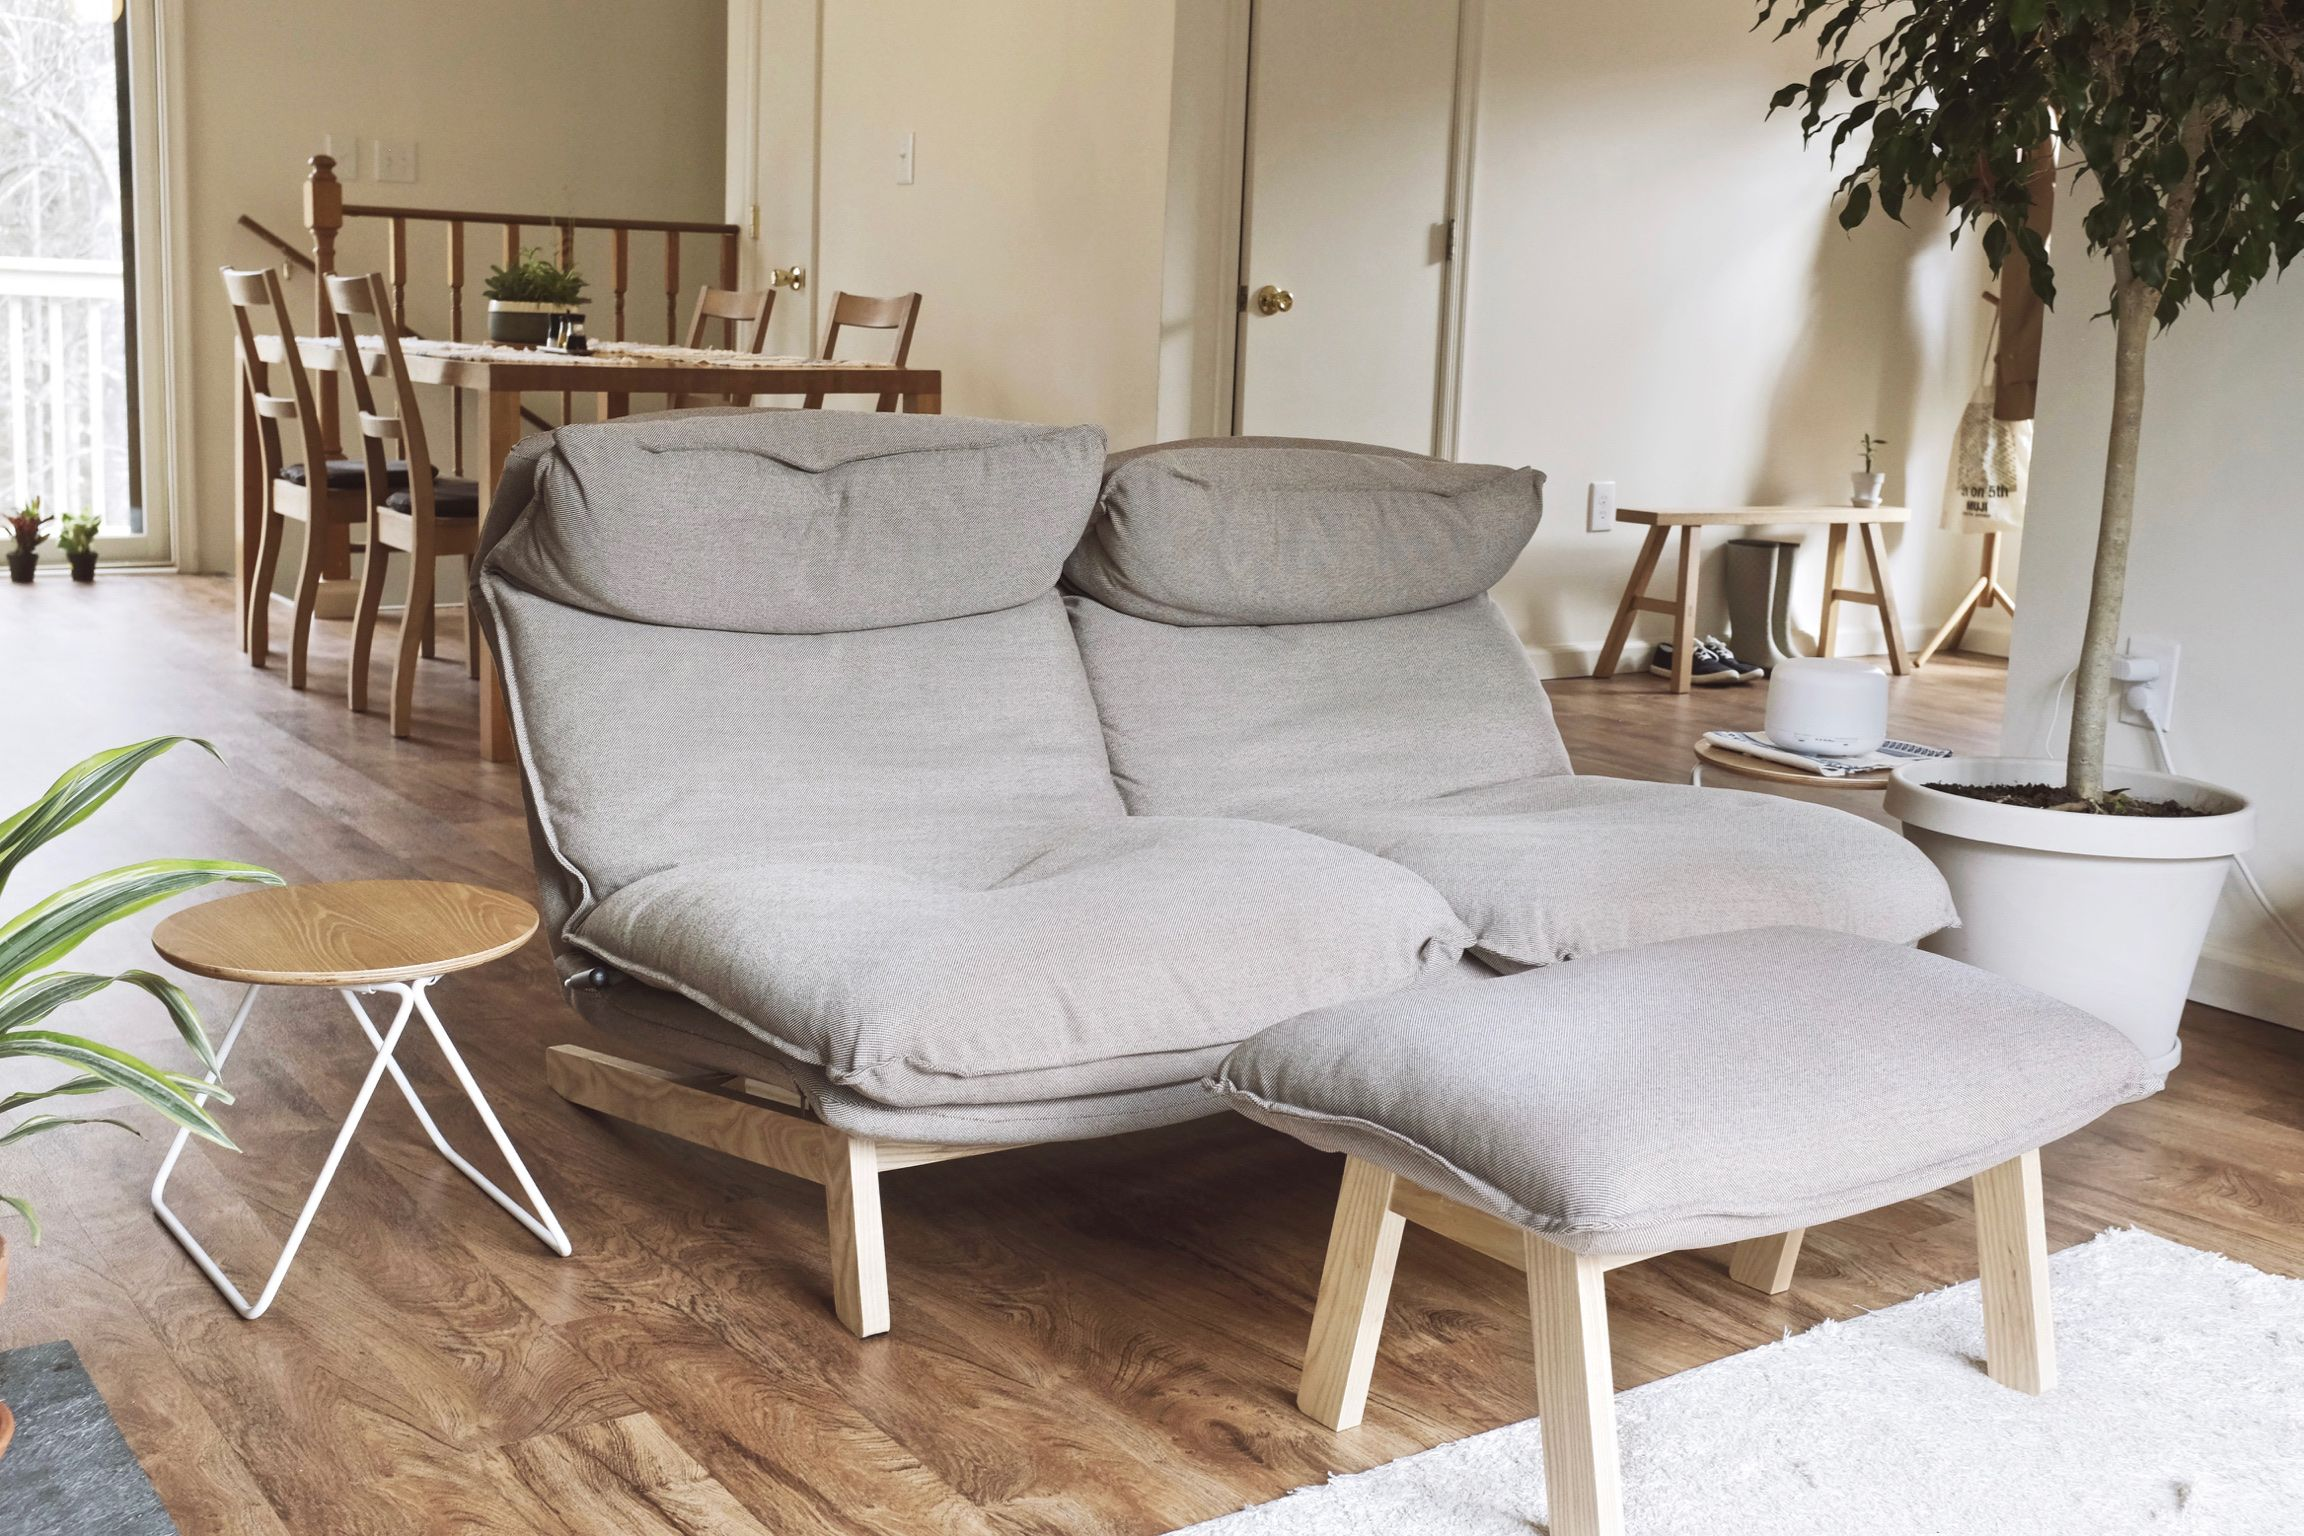 Muji Muebles Barcelona - Muji S Reclining Sofa Is The Most Comfortable Piece Of Furniture [mjhdah]https://s-media-cache-ak0.pinimg.com/originals/c3/3e/58/c33e5820446634b248bcf109d7e0f96a.jpg